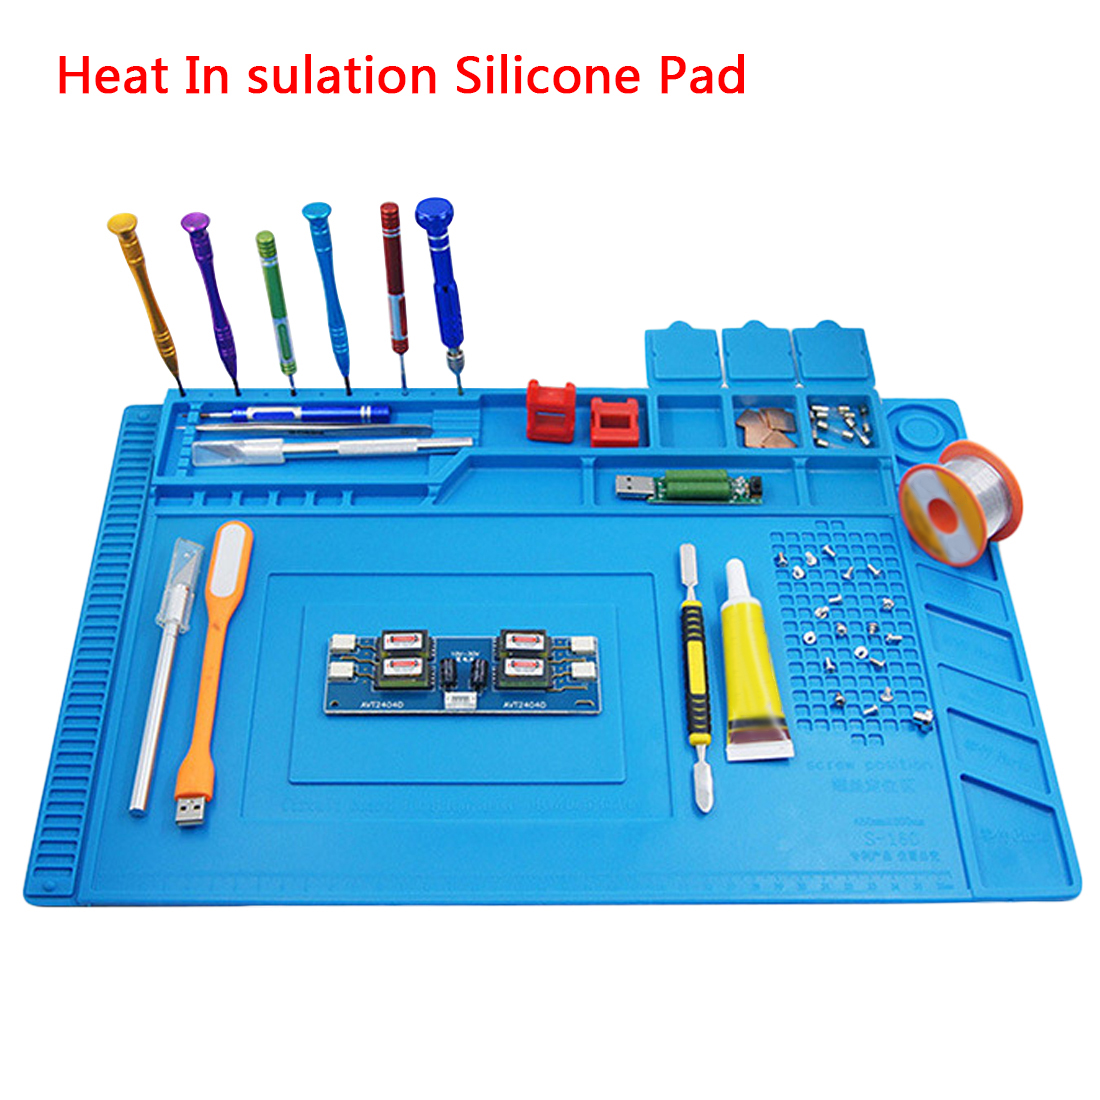 45x30cm Heat Insulation Silicone Pad Desk Mat Maintenance Platform for BGA Soldering Repair Station with Magnetic Section s 160 45x30cm heat insulation silicone pad desk mat maintenance platform for bga soldering repair station with magnetic section